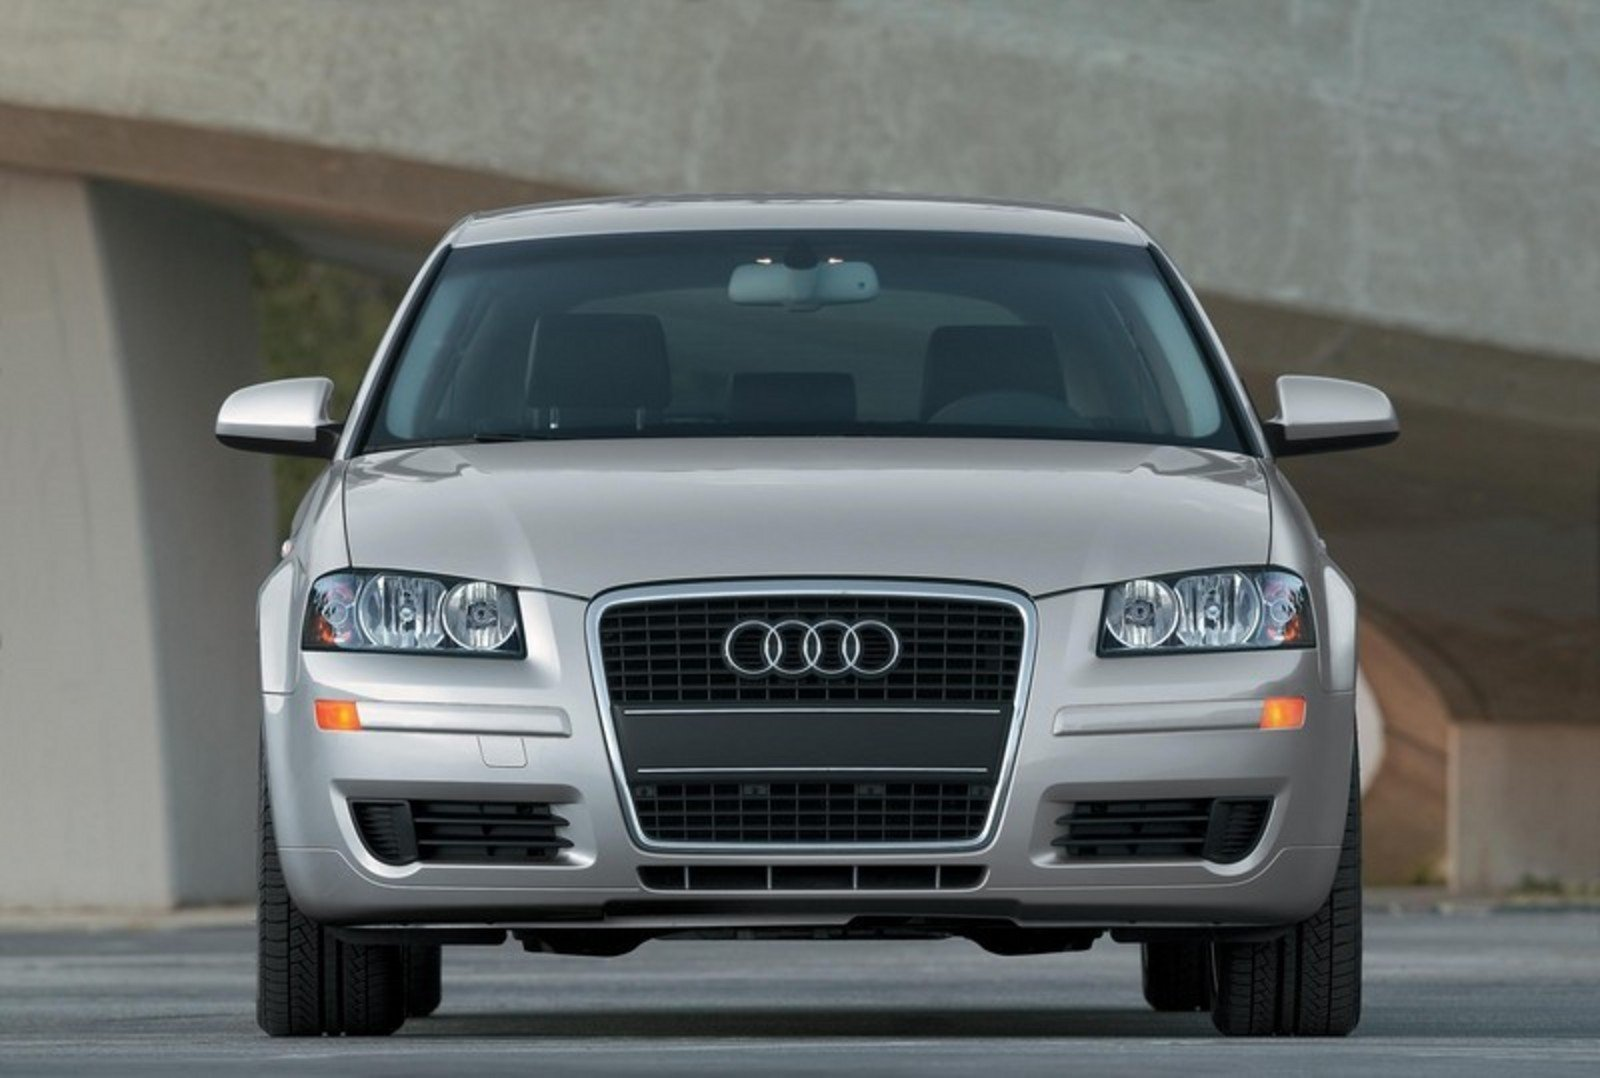 2006 audi a3 picture 45126 car review top speed. Black Bedroom Furniture Sets. Home Design Ideas